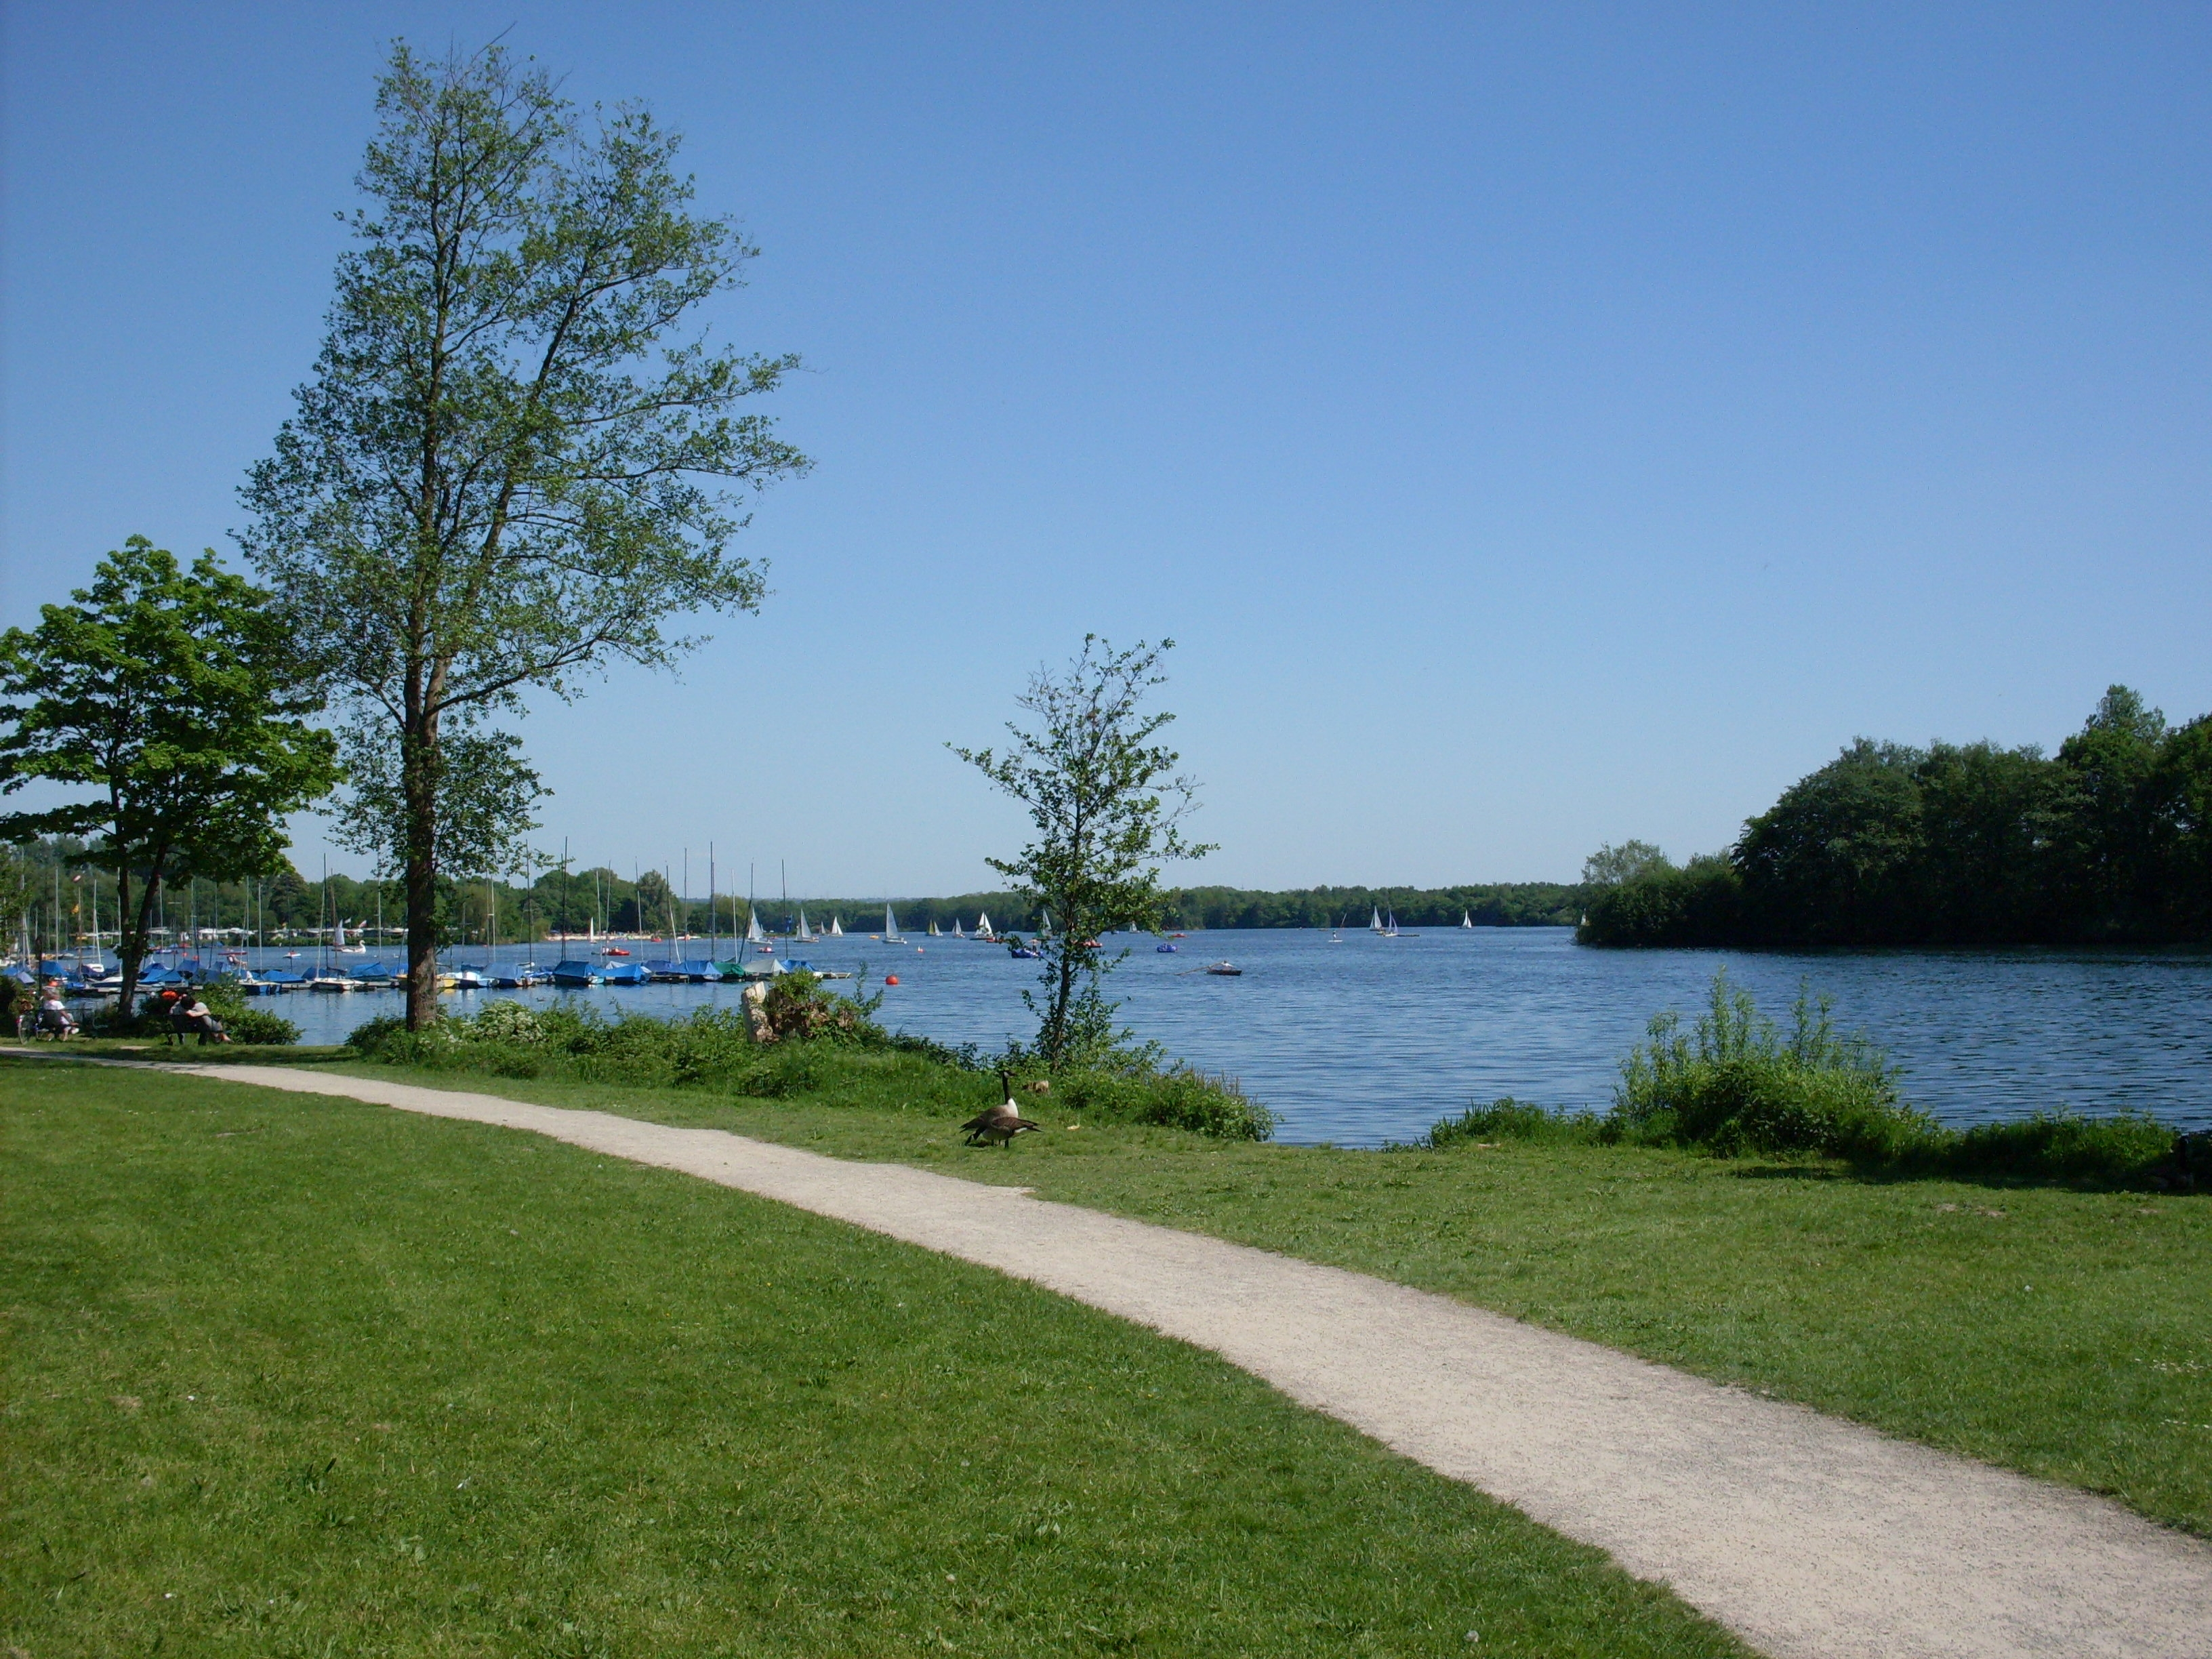 The Unterbacher See lake and park